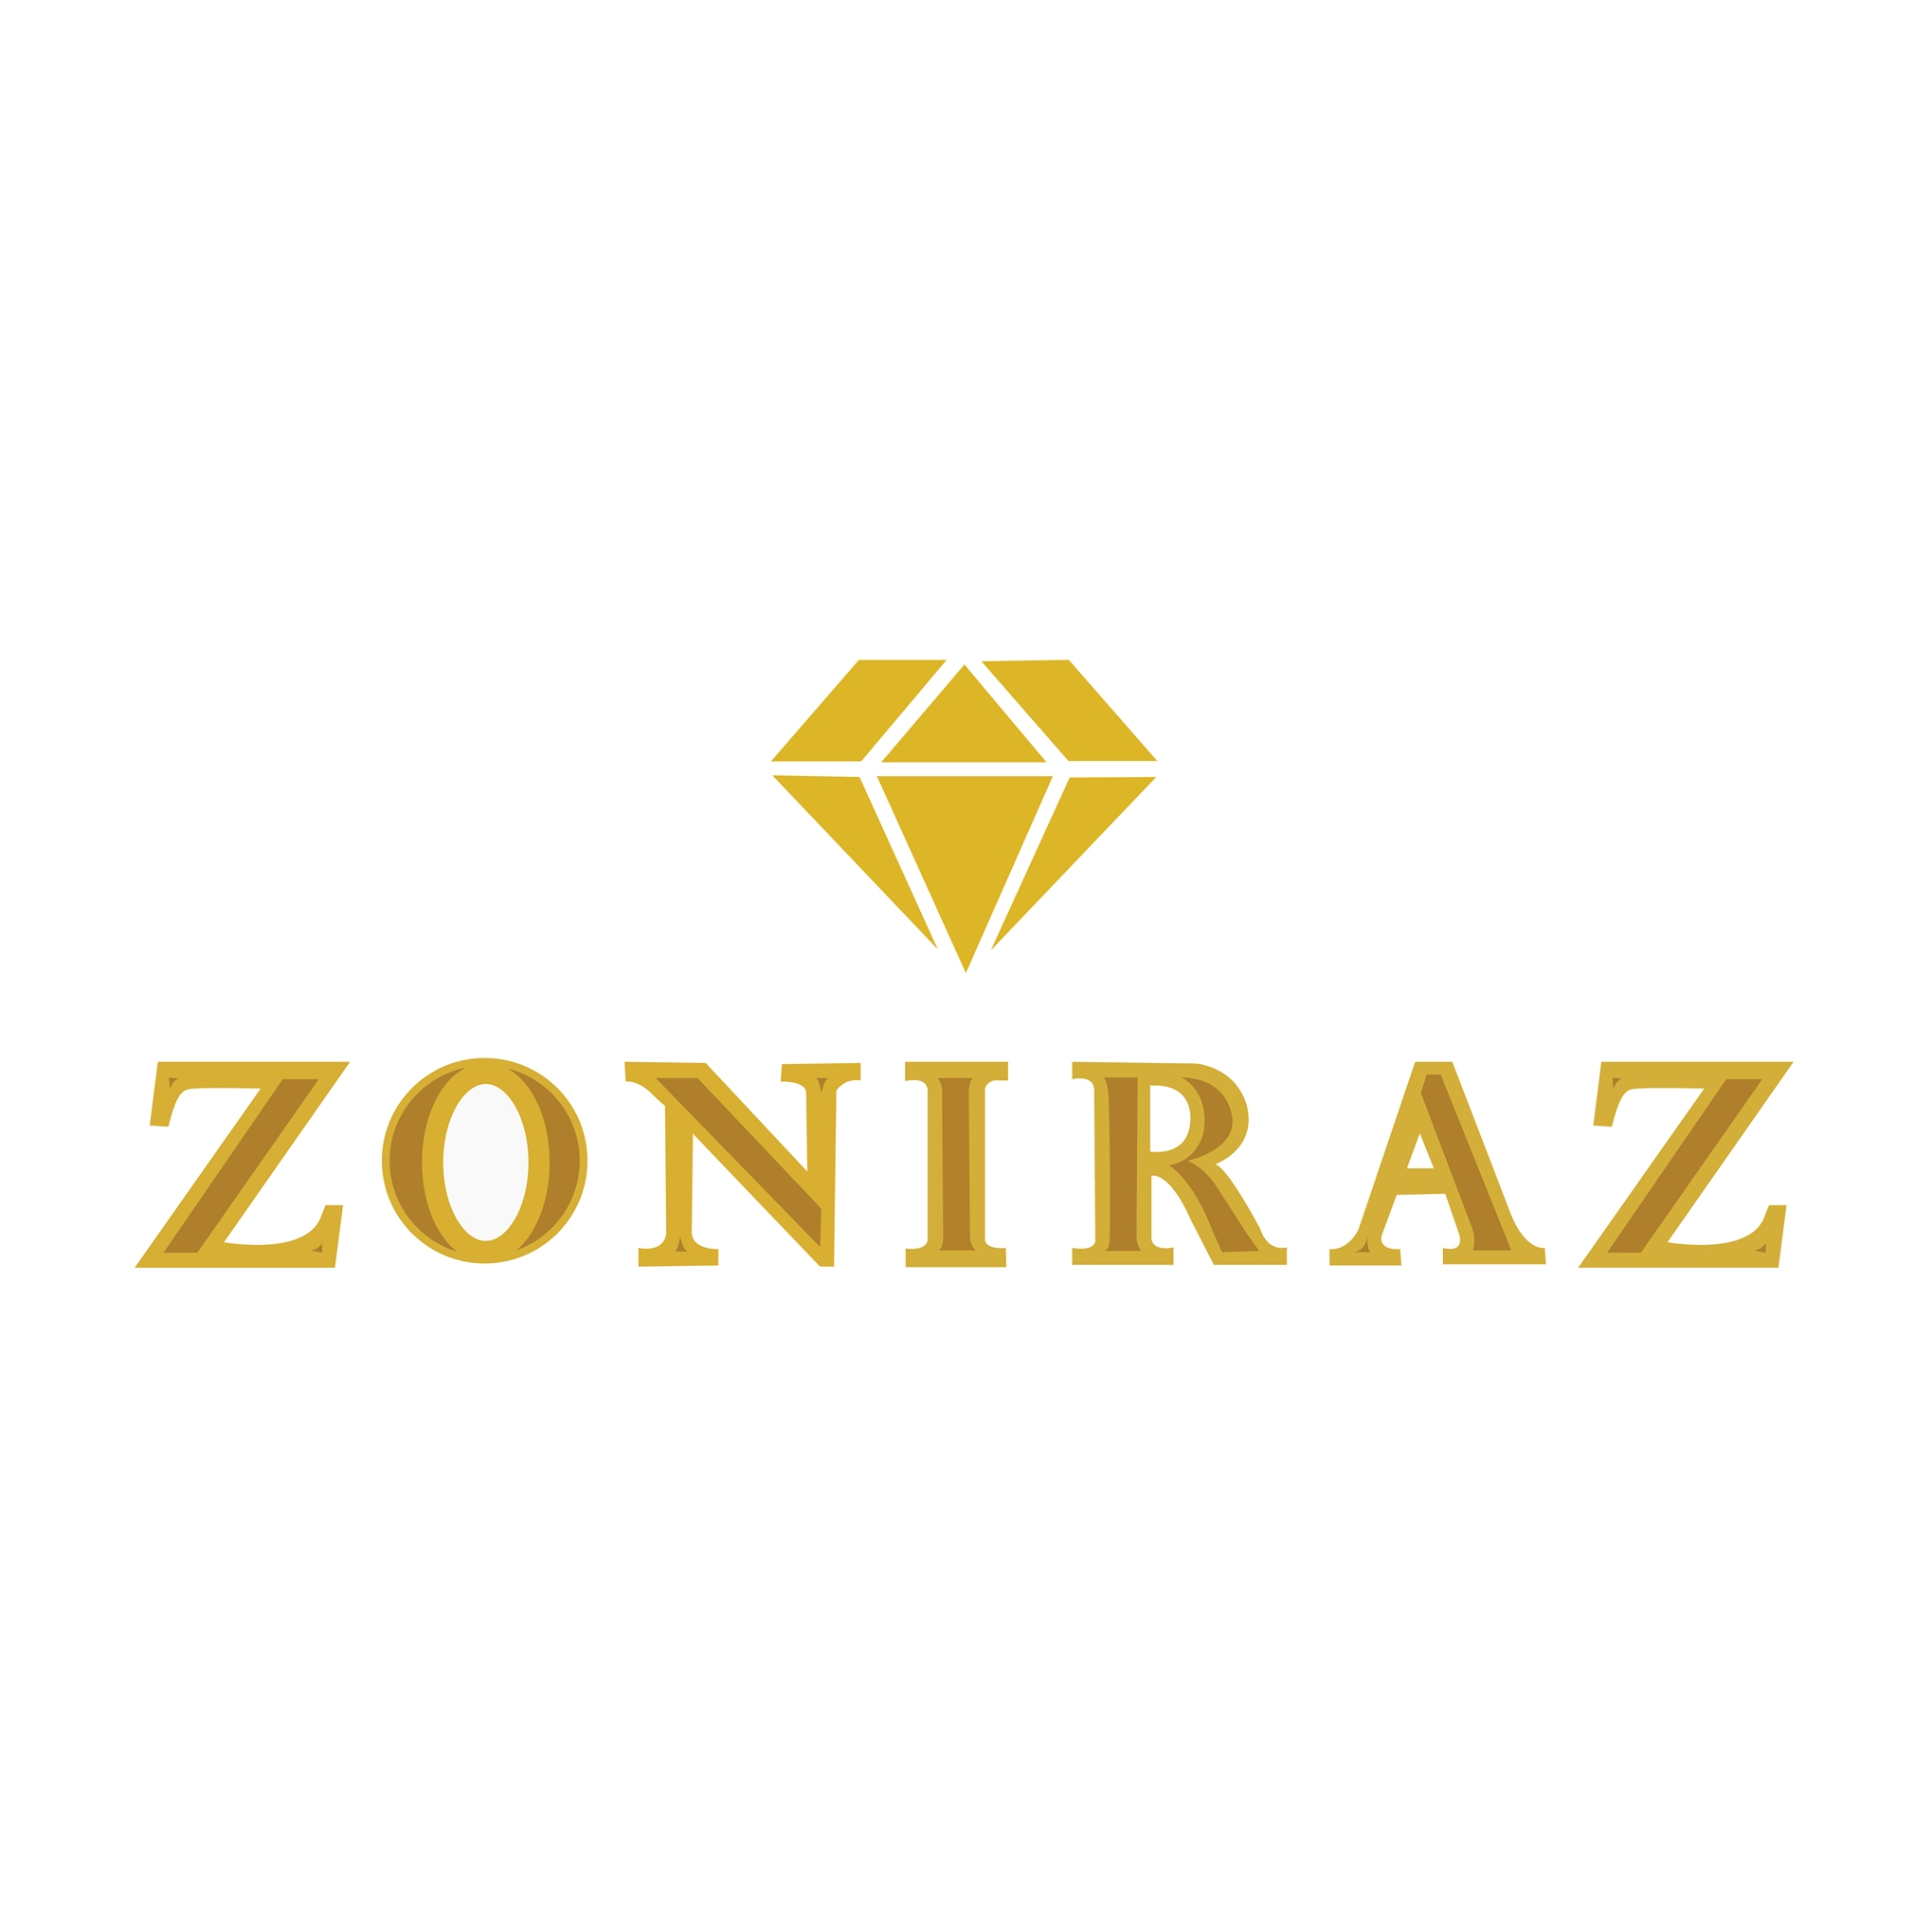 https://www.zoniraz.com/jewellery/rings, https://www.zoniraz.com/jewellery/rings